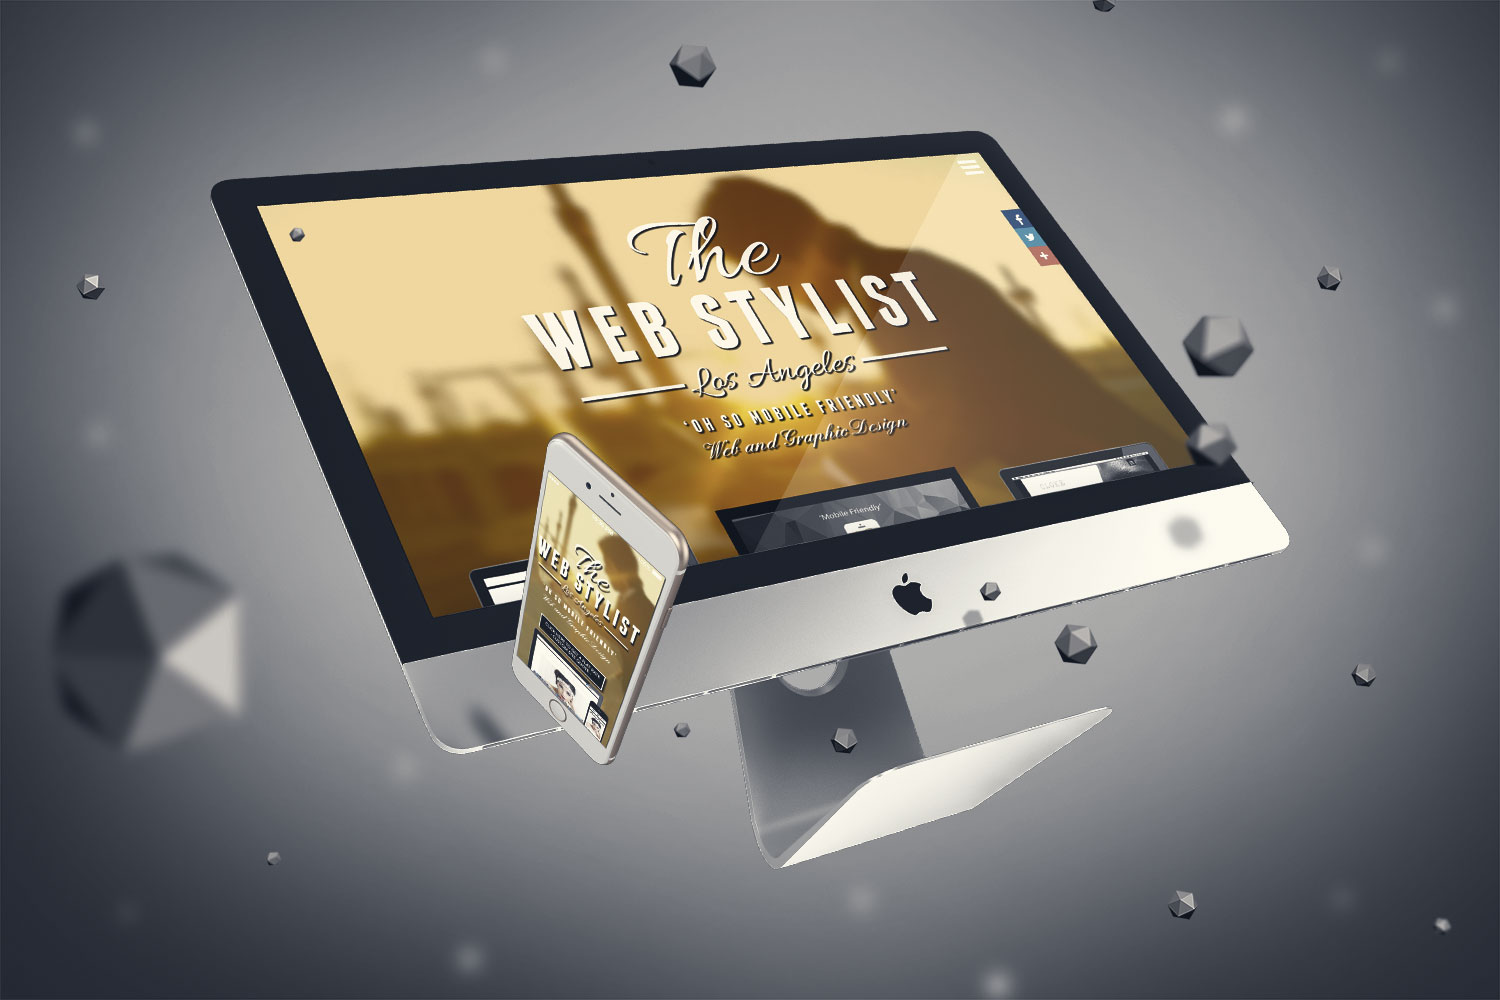 The Web Stylist Parallax Mobile Friendly